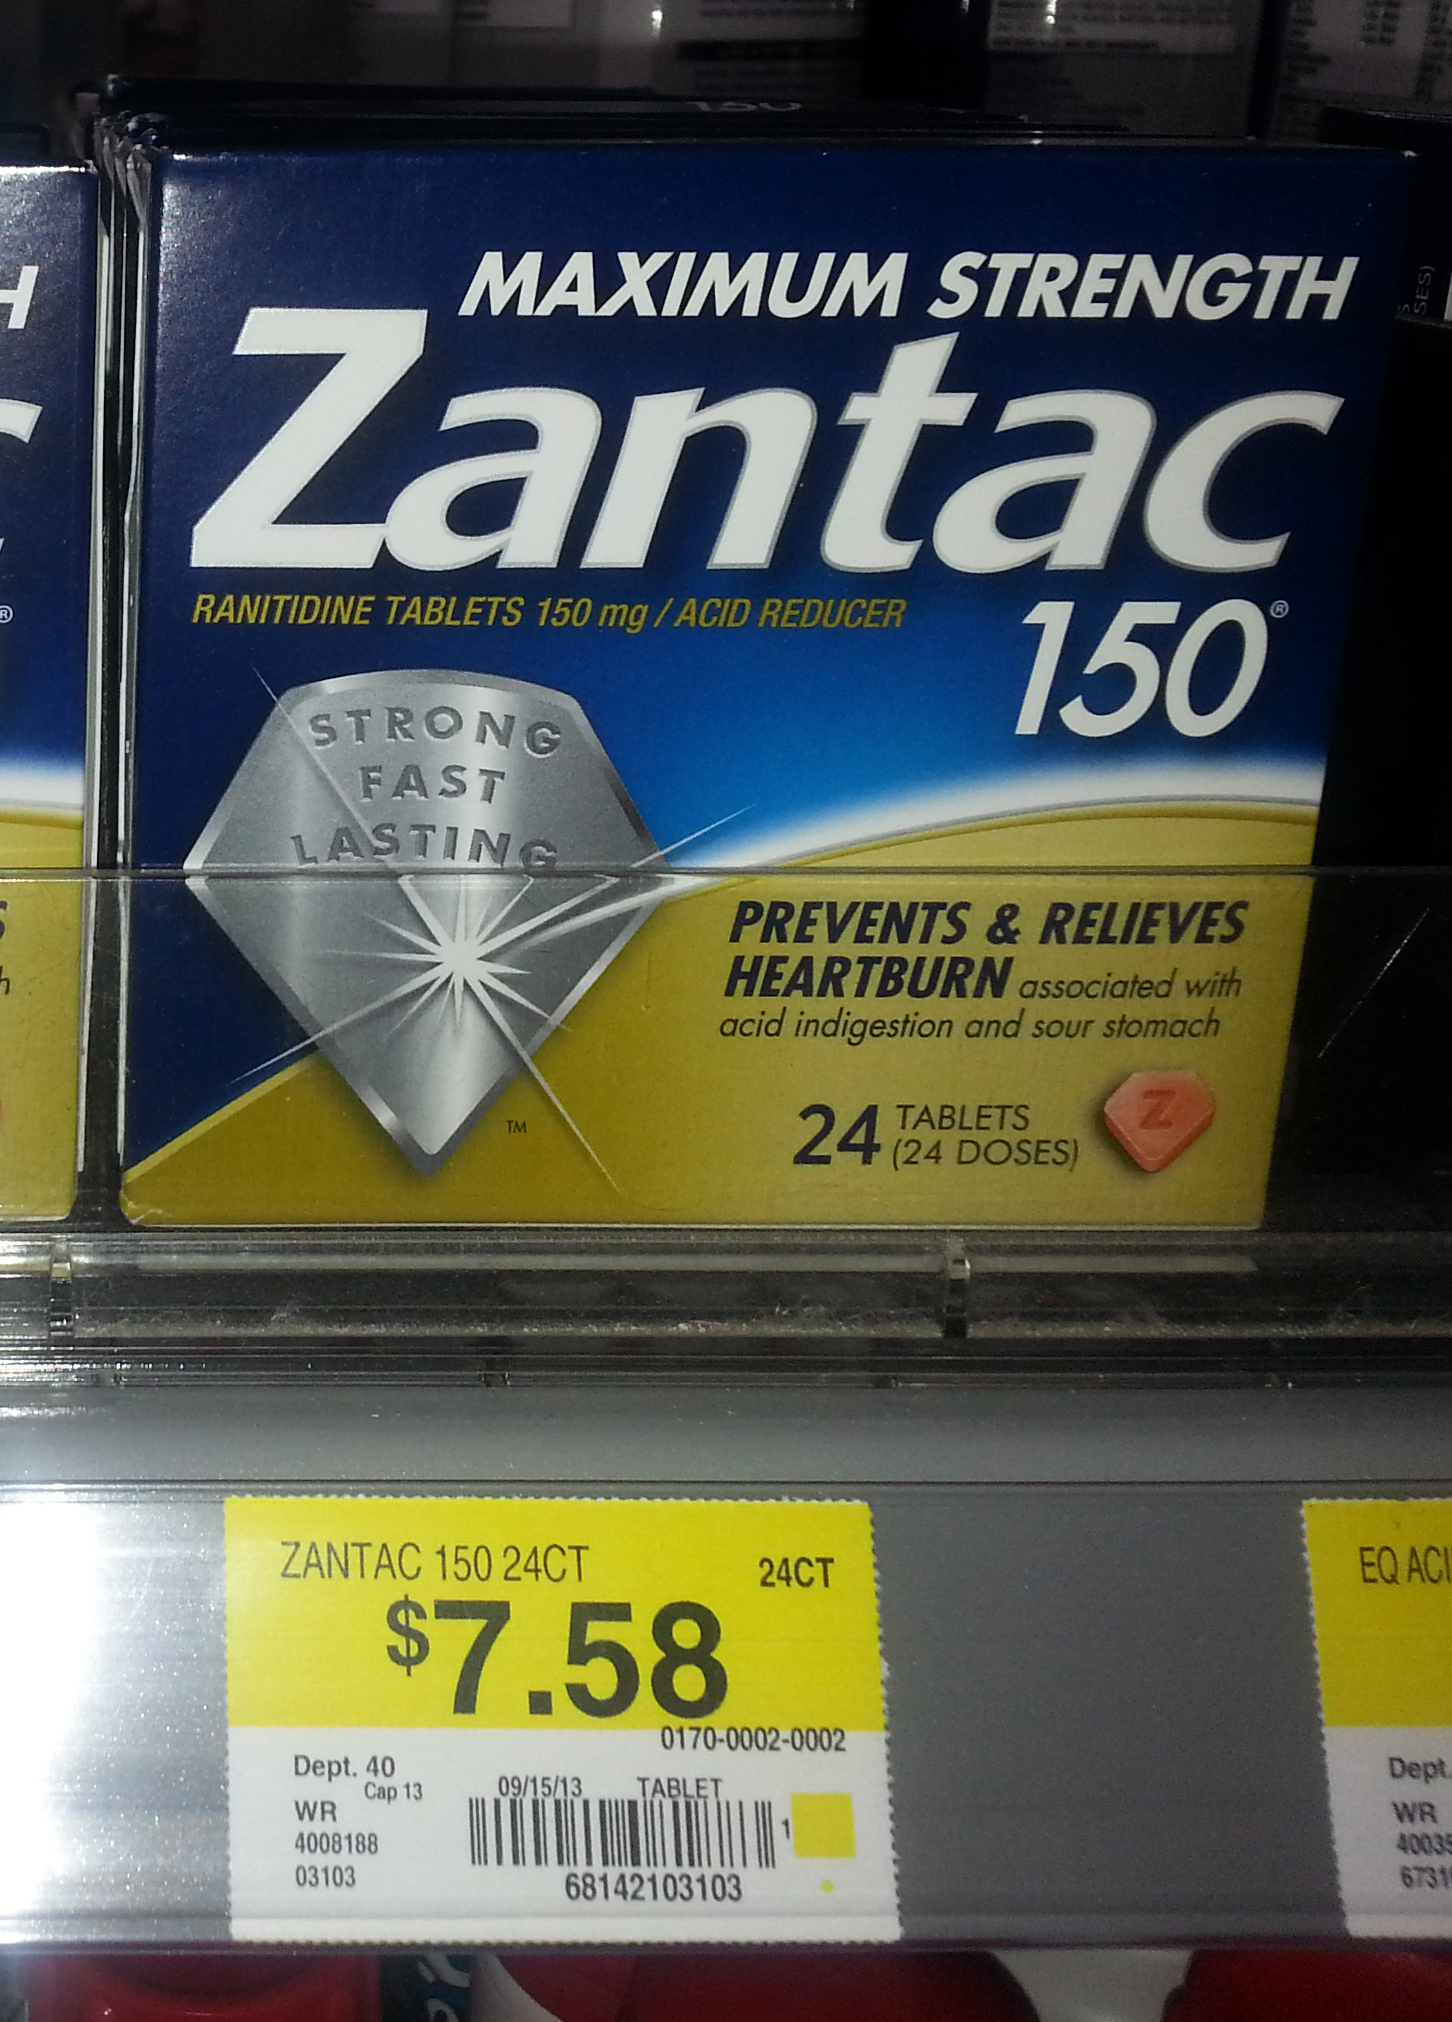 Zantac Just $5.58 at Walmart!